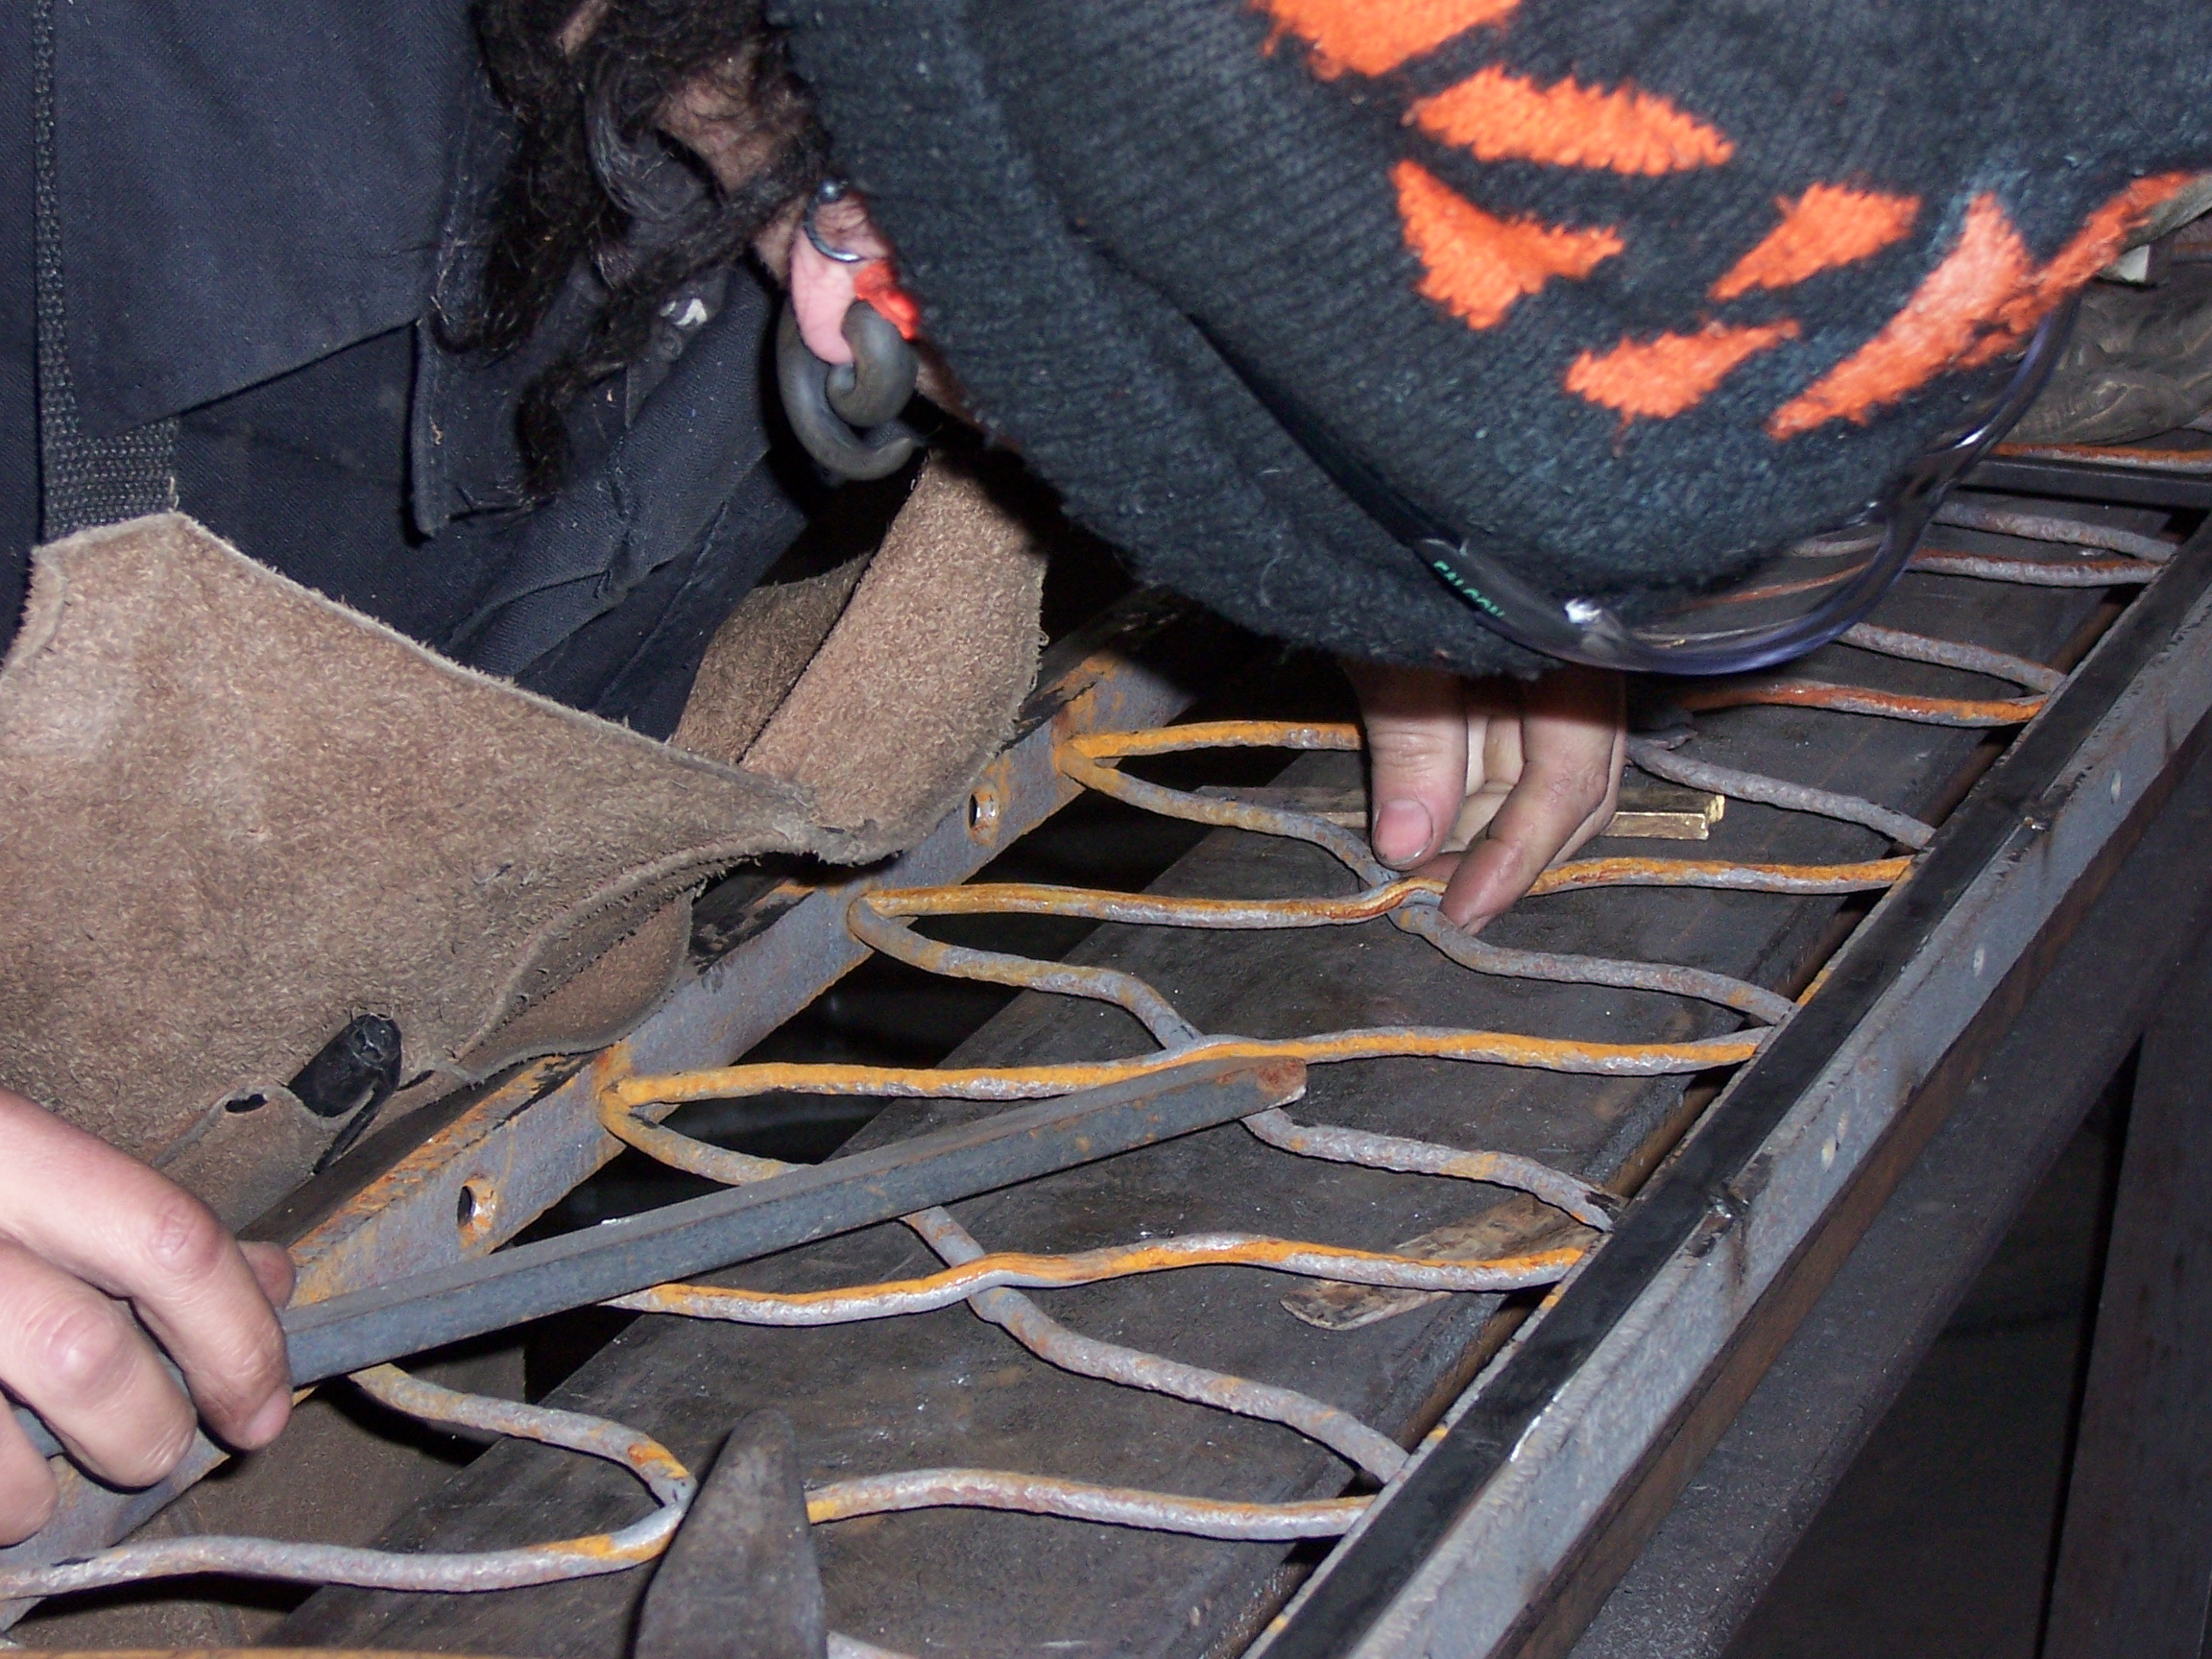 Crimped wires were assembled by hand to recreate the original ironwork.